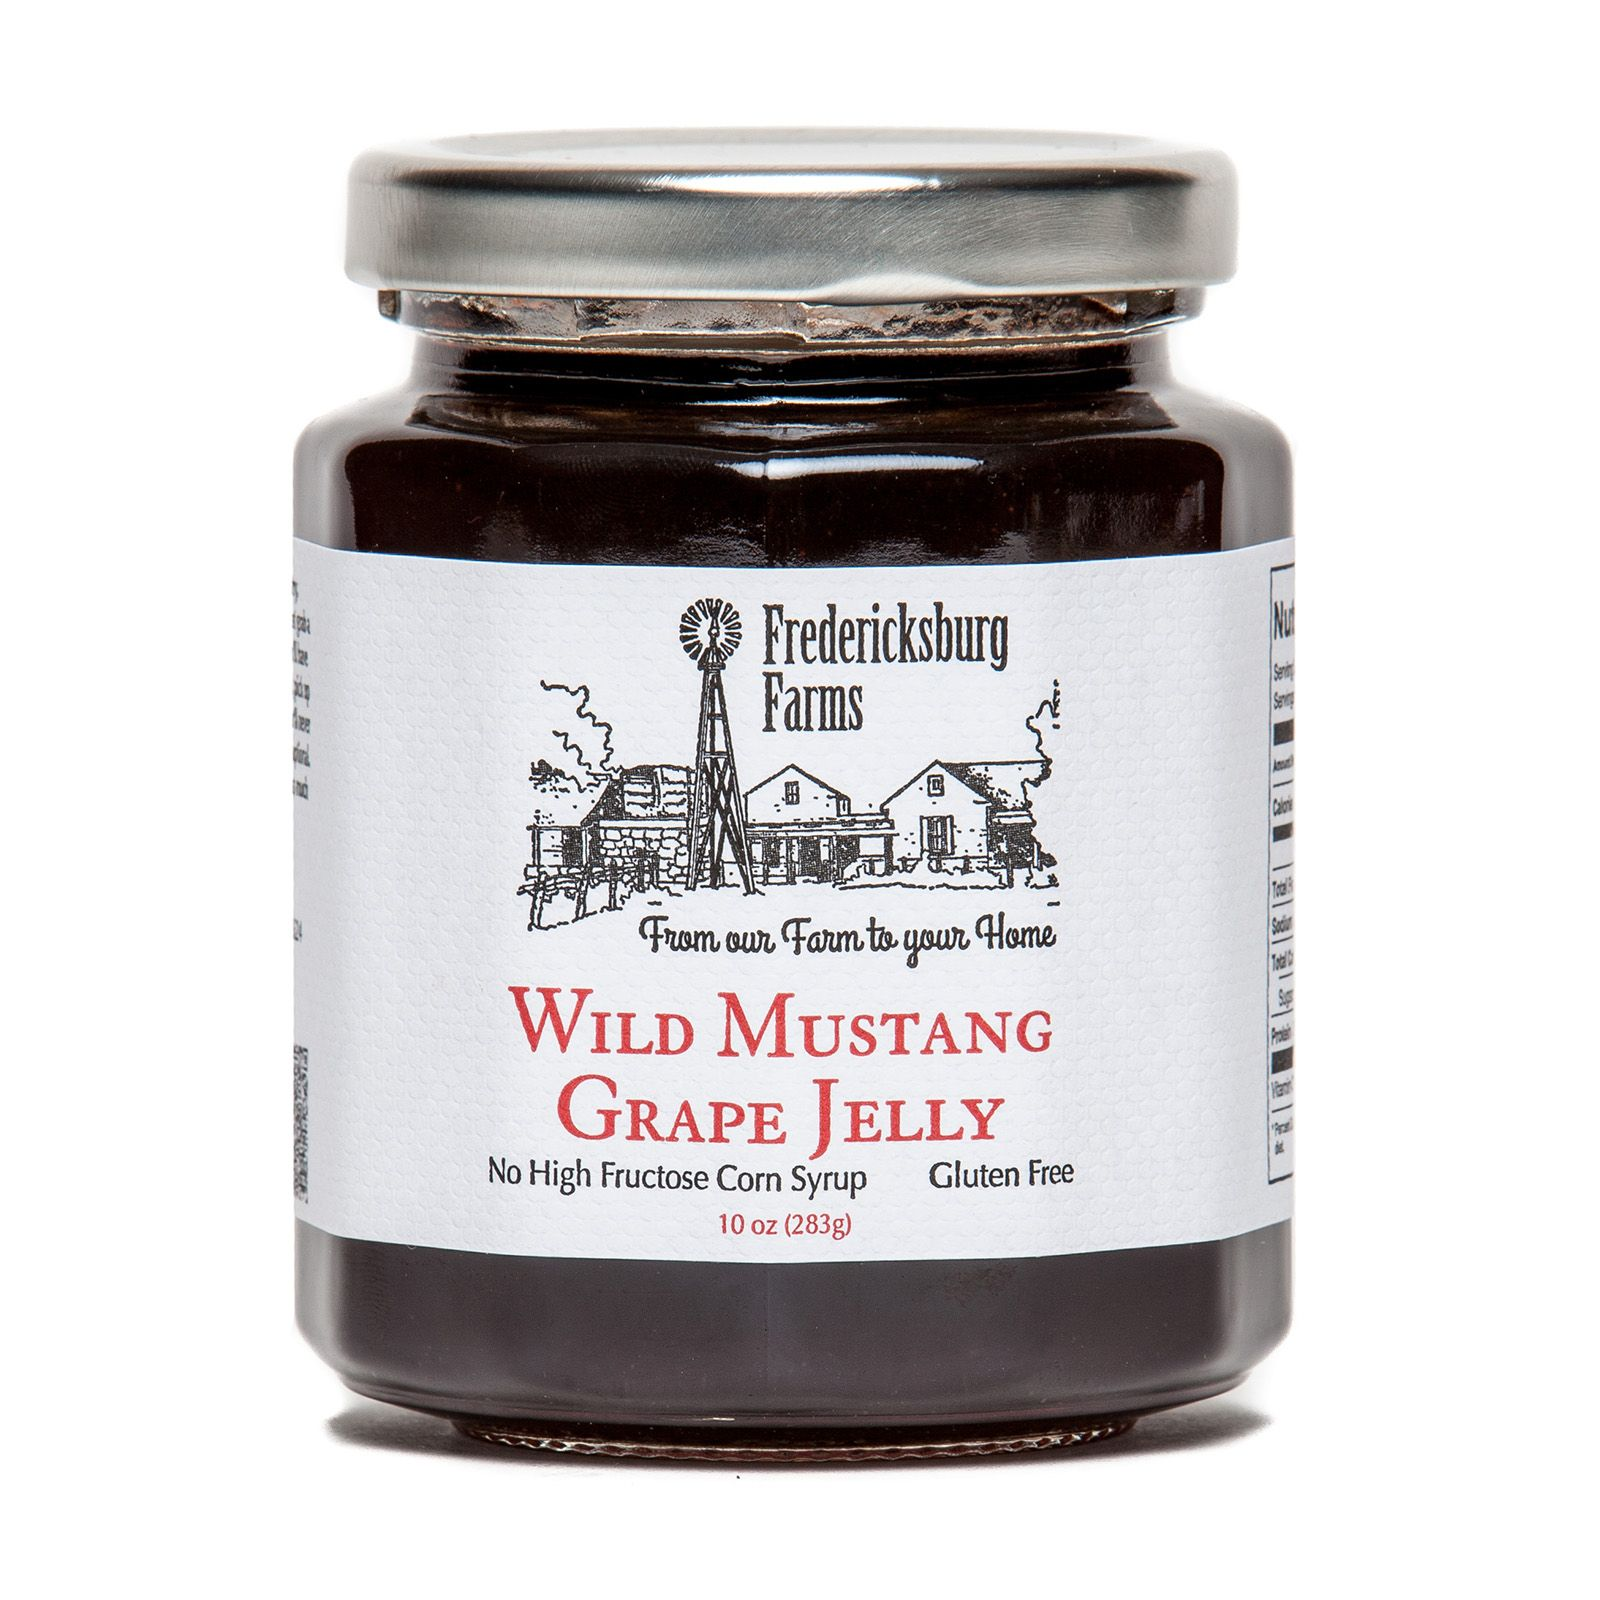 Fredericksburg Farms Wild Mustang Grape Jelly